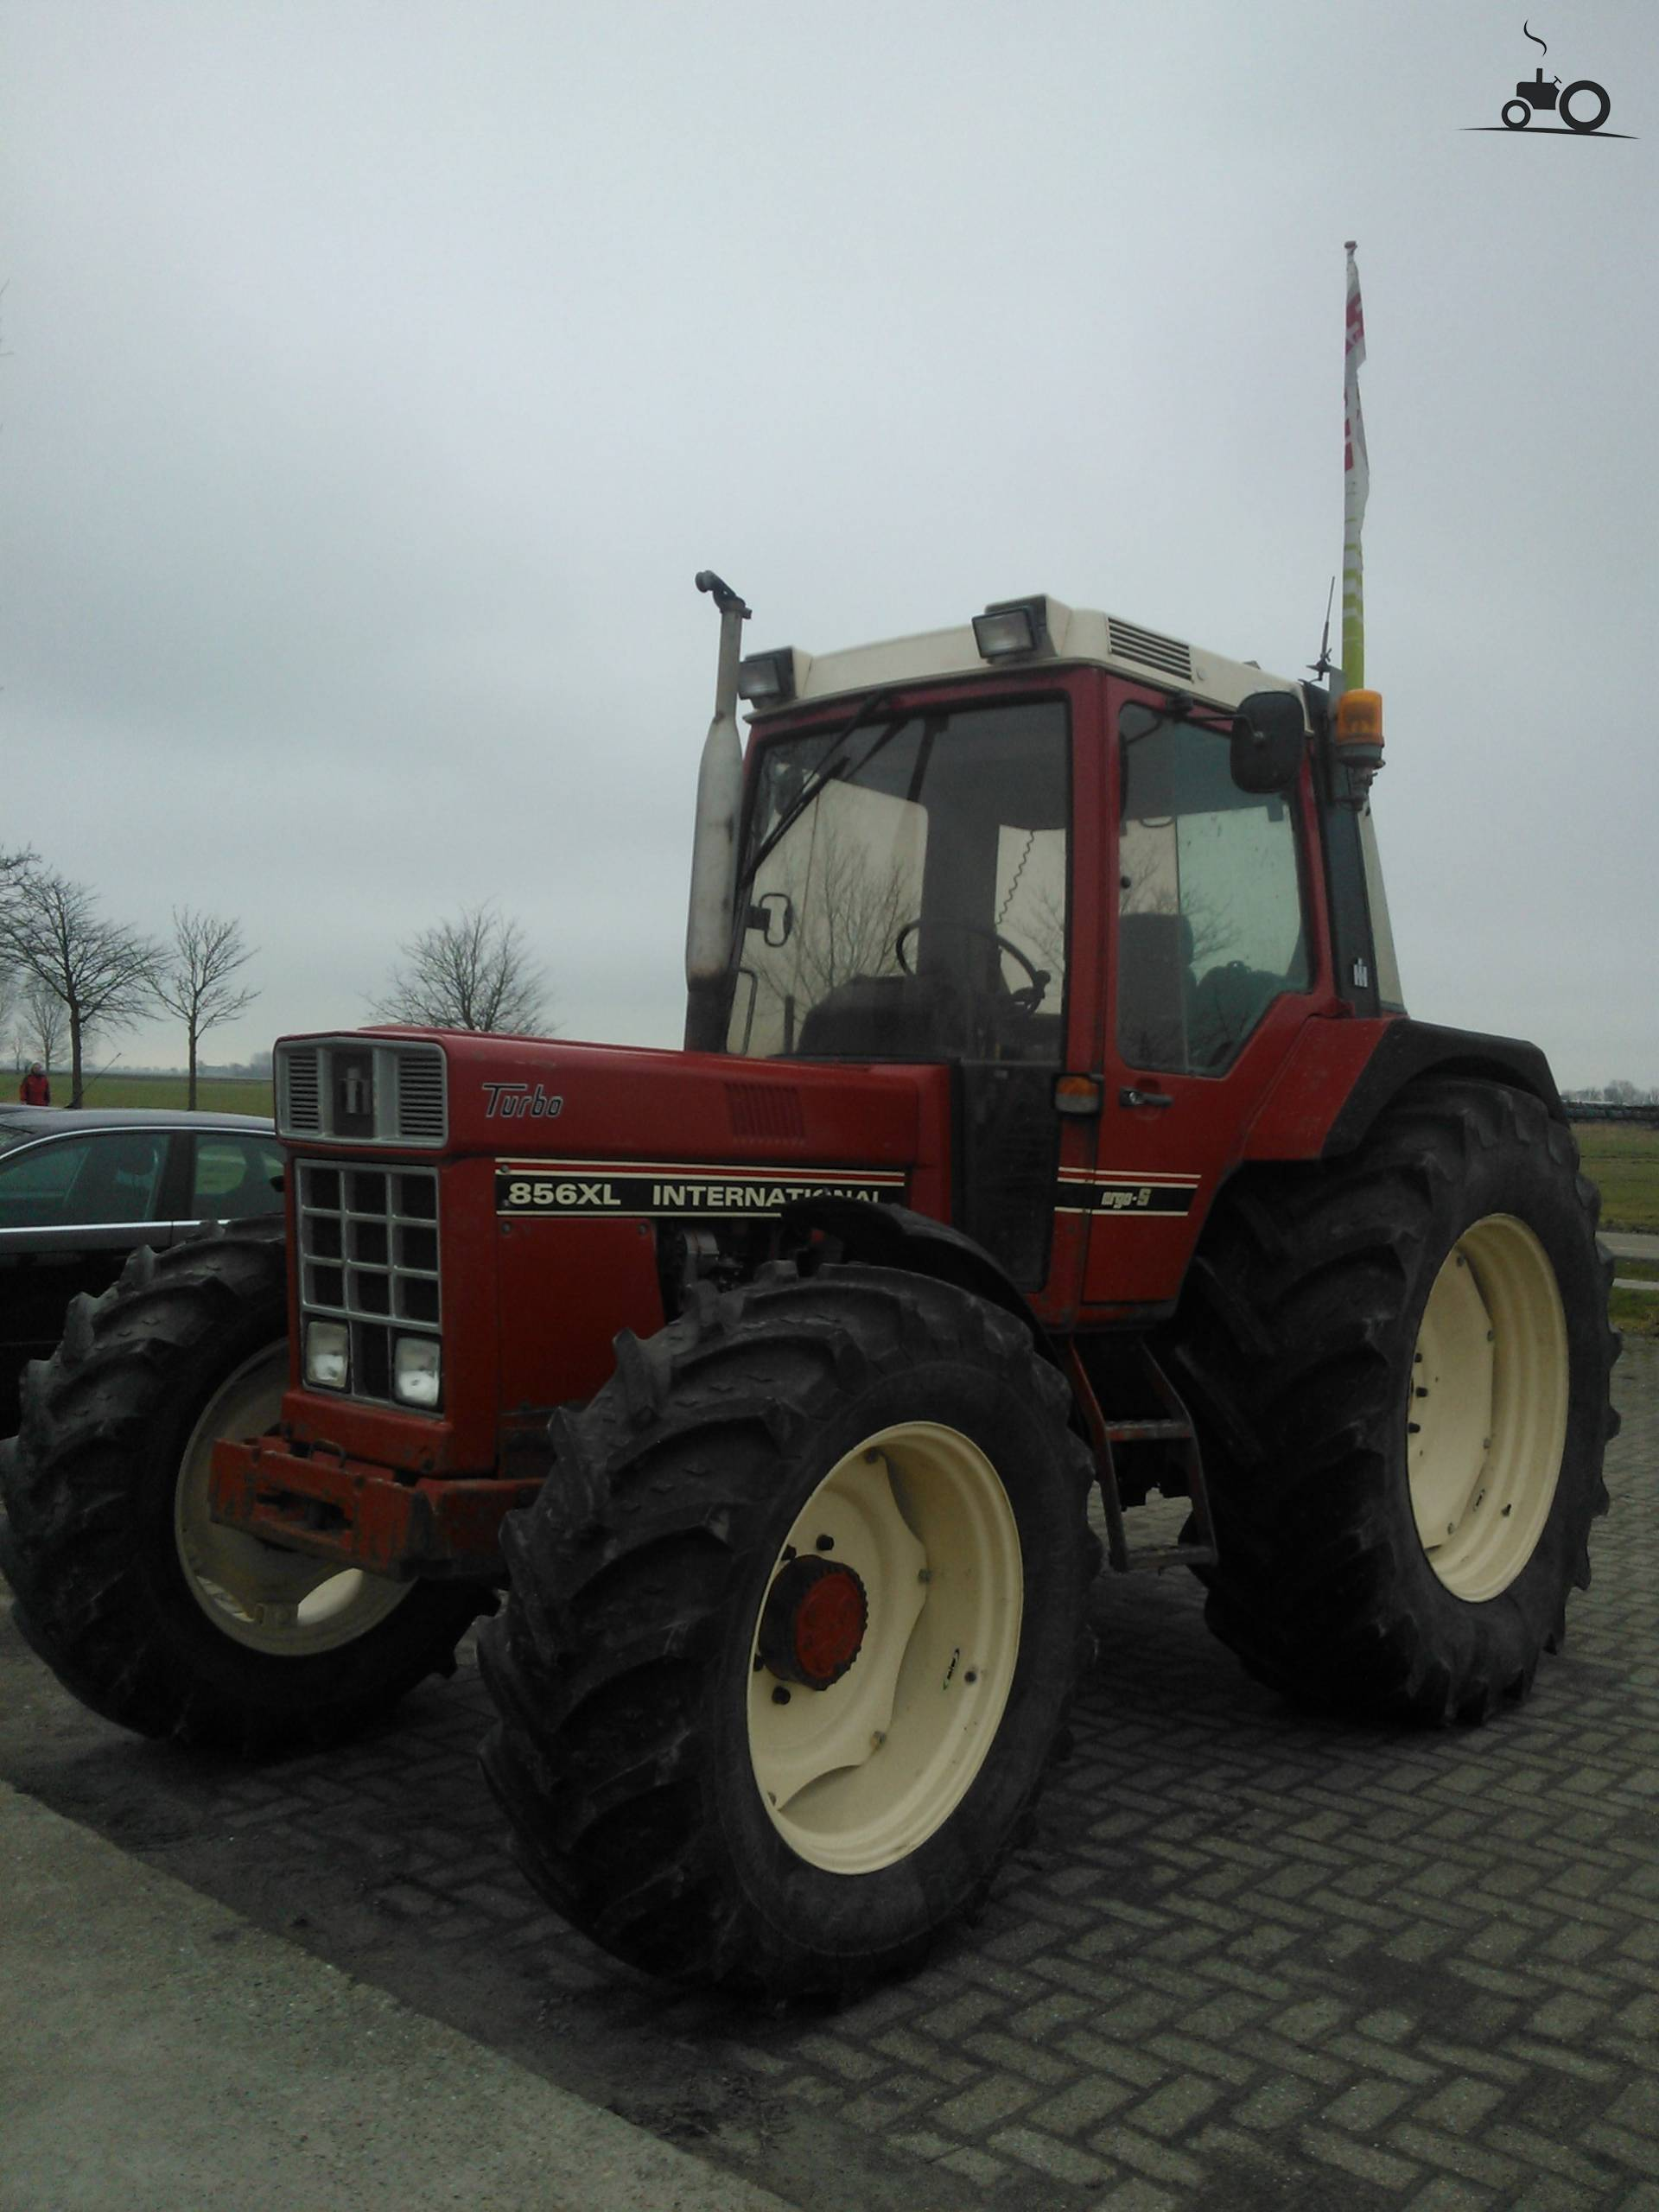 International 856 XL